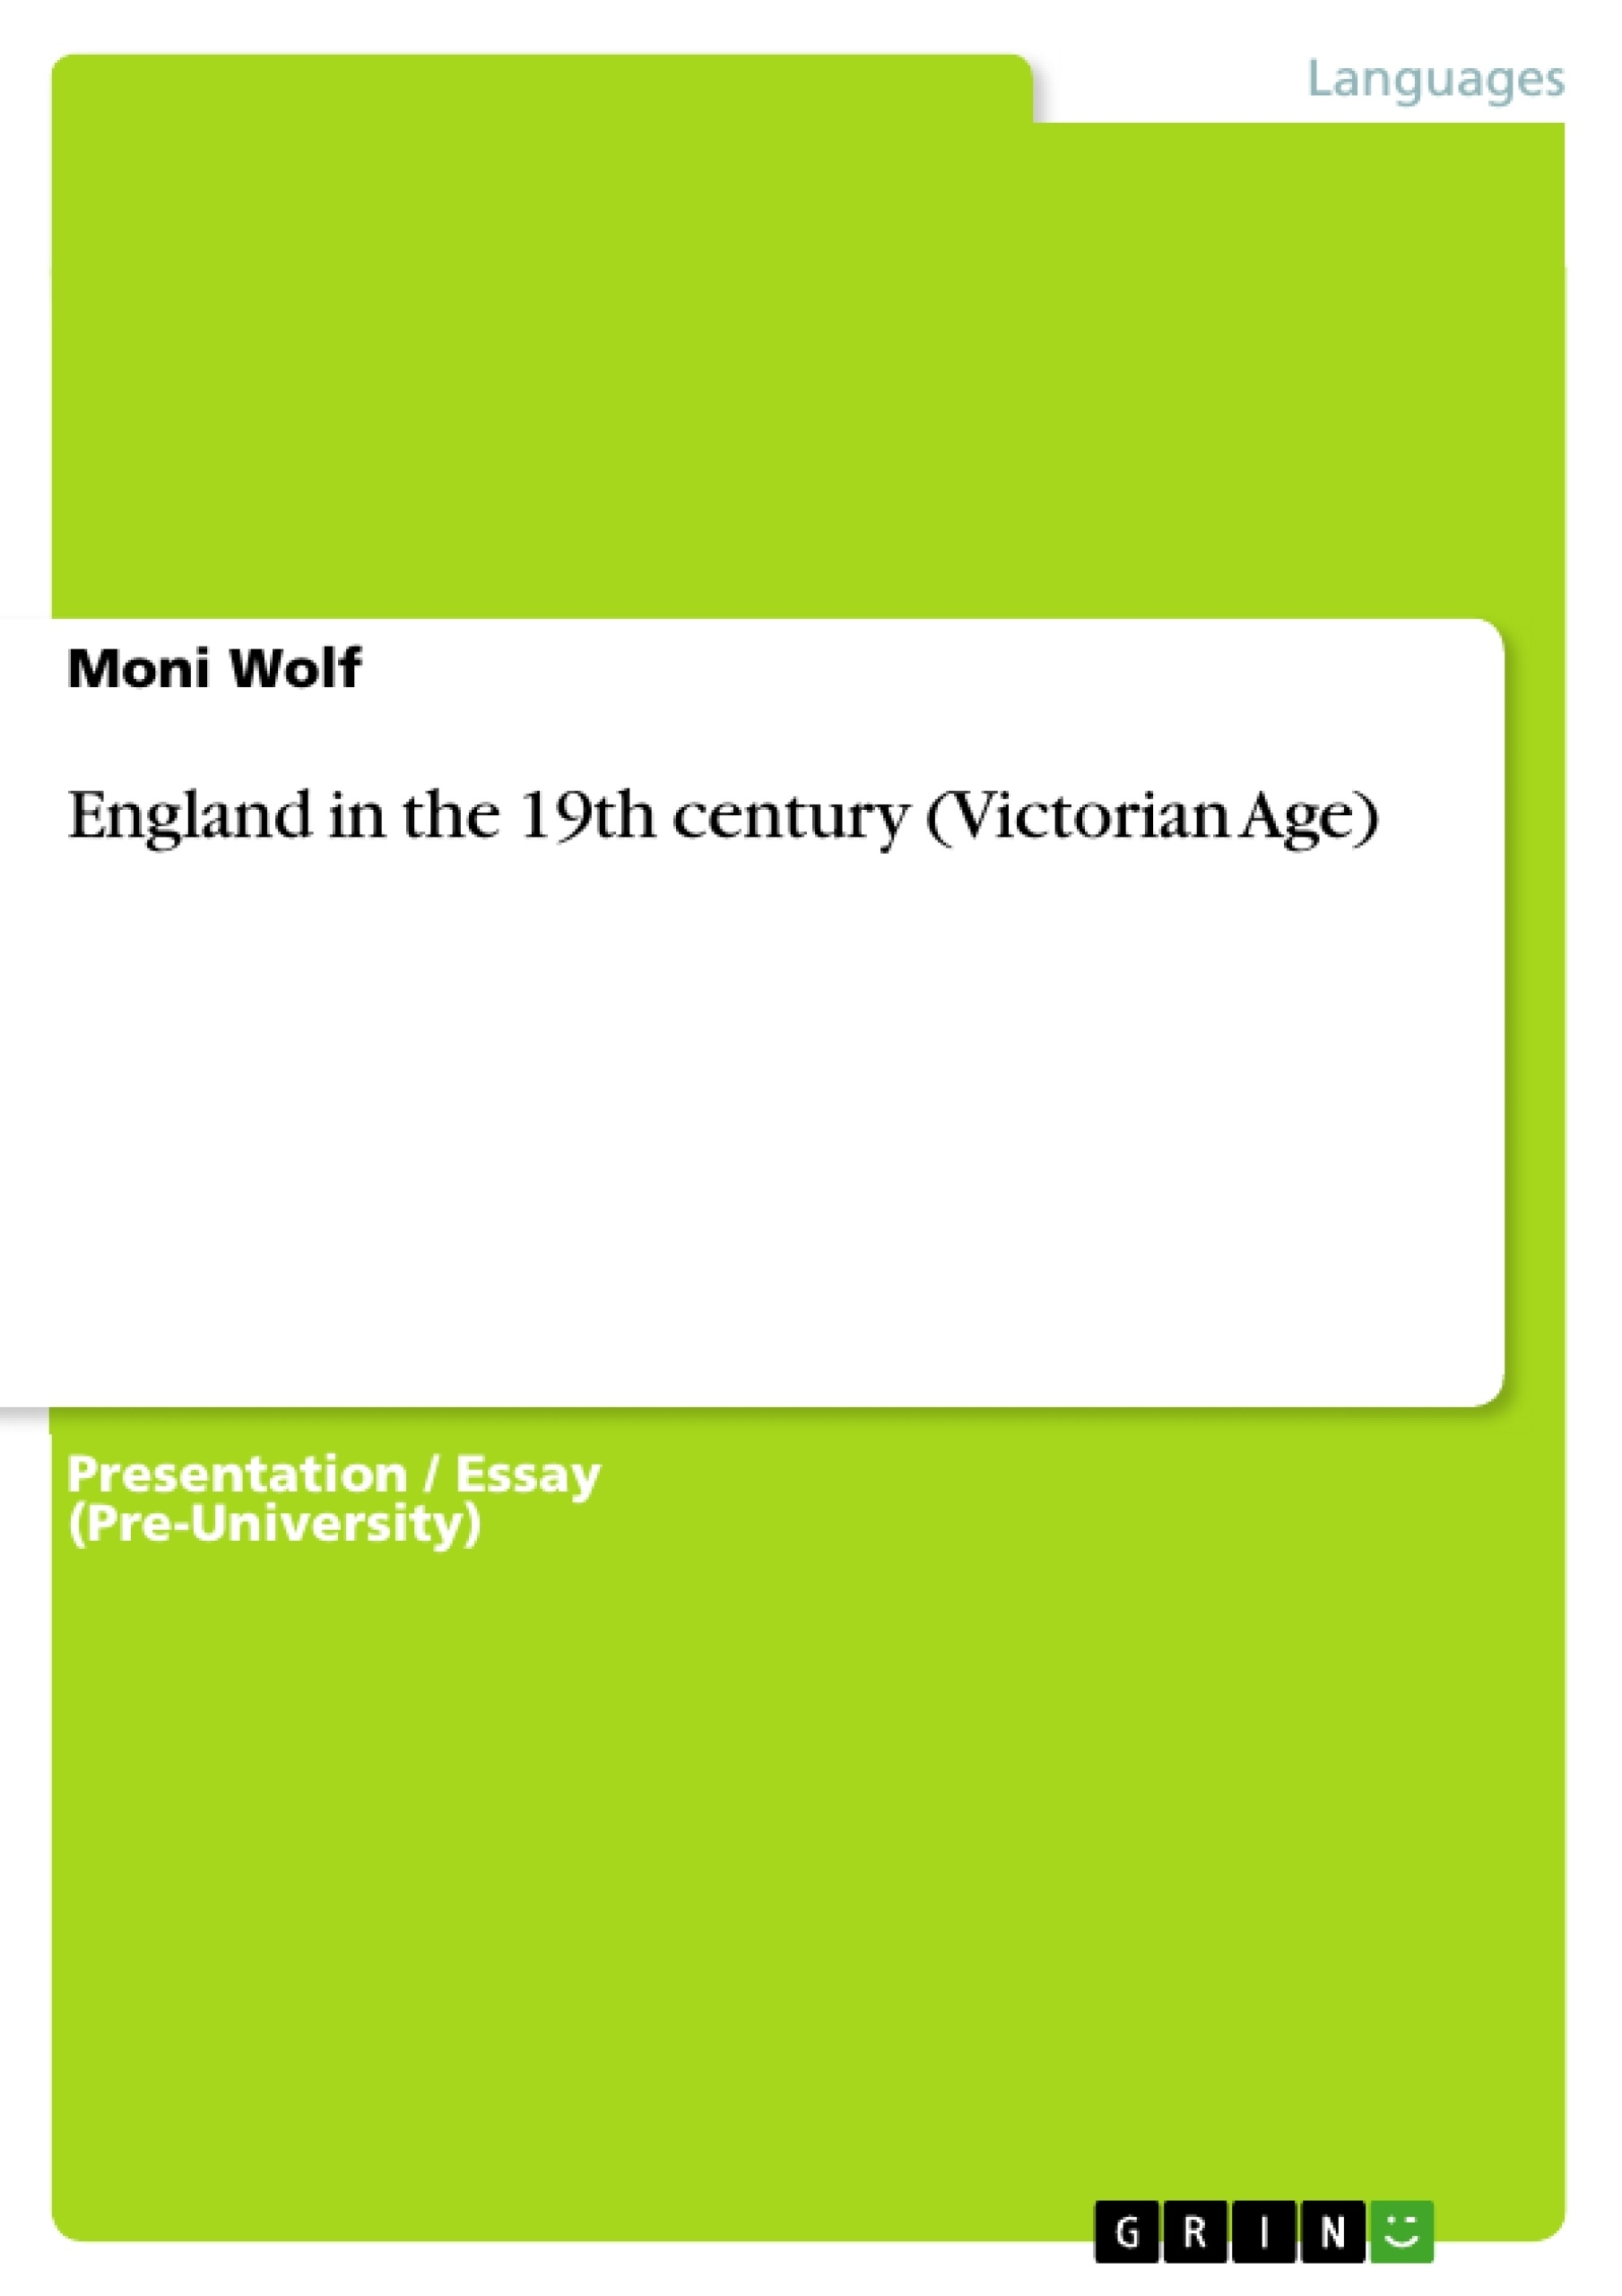 Title: England in the 19th century (Victorian Age)